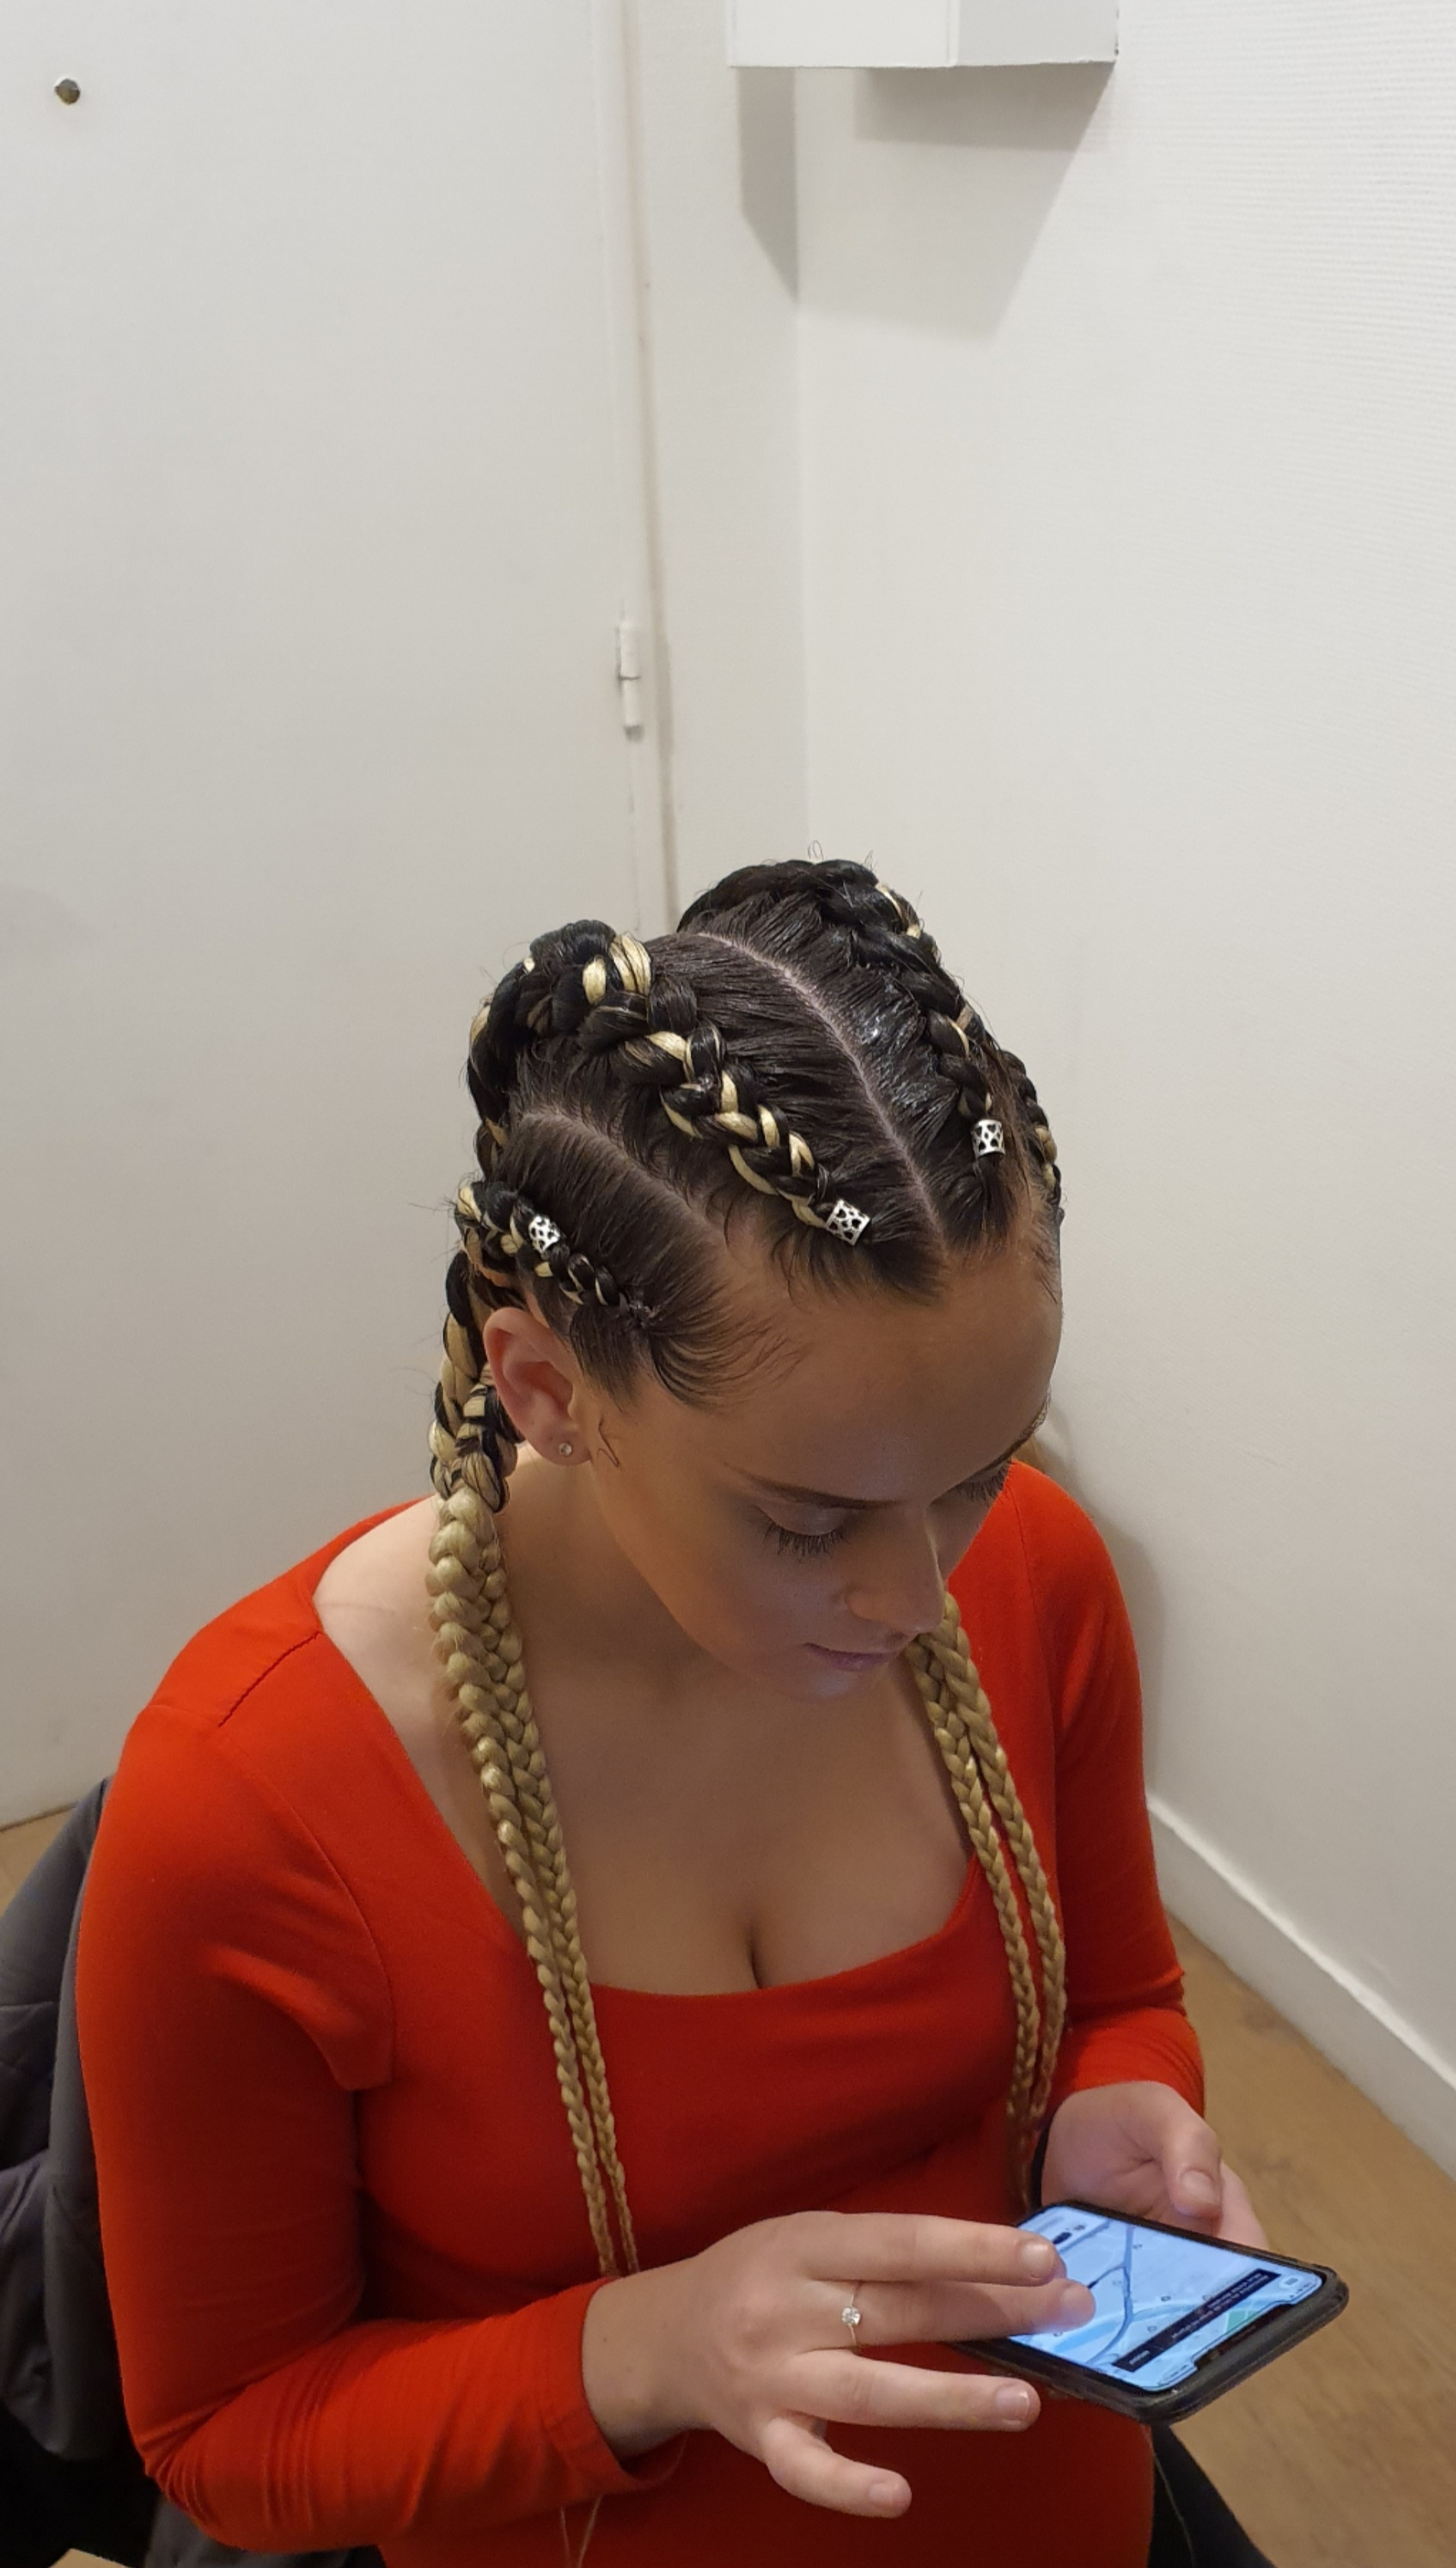 salon de coiffure afro tresse tresses box braids crochet braids vanilles tissages paris 75 77 78 91 92 93 94 95 QADYJTUJ